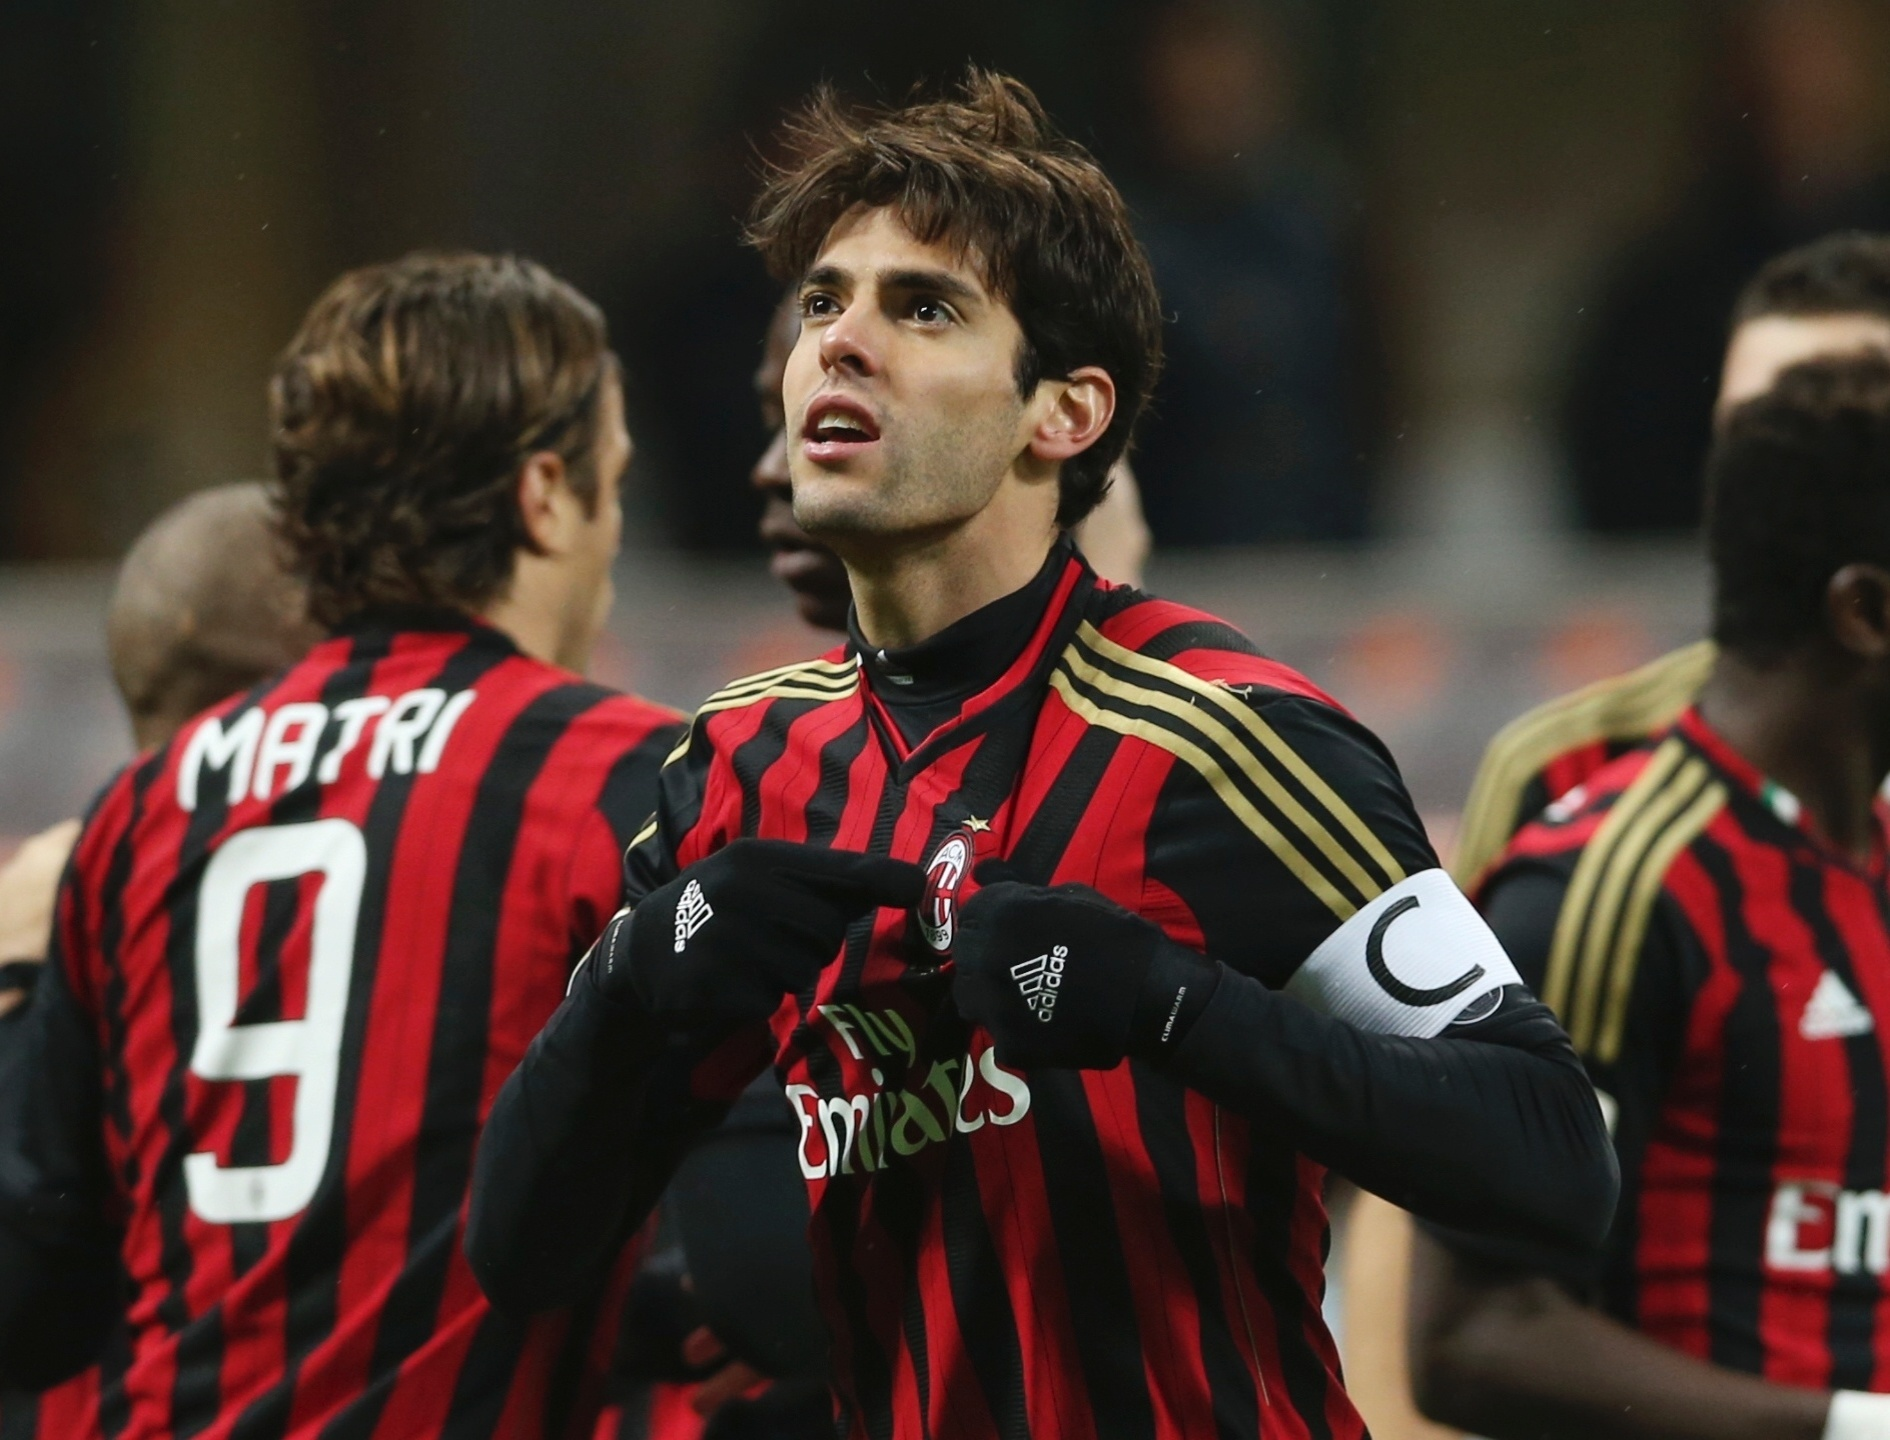 Ricardo Kaka Wallpapers Hd Kaka Hd Wallpapers